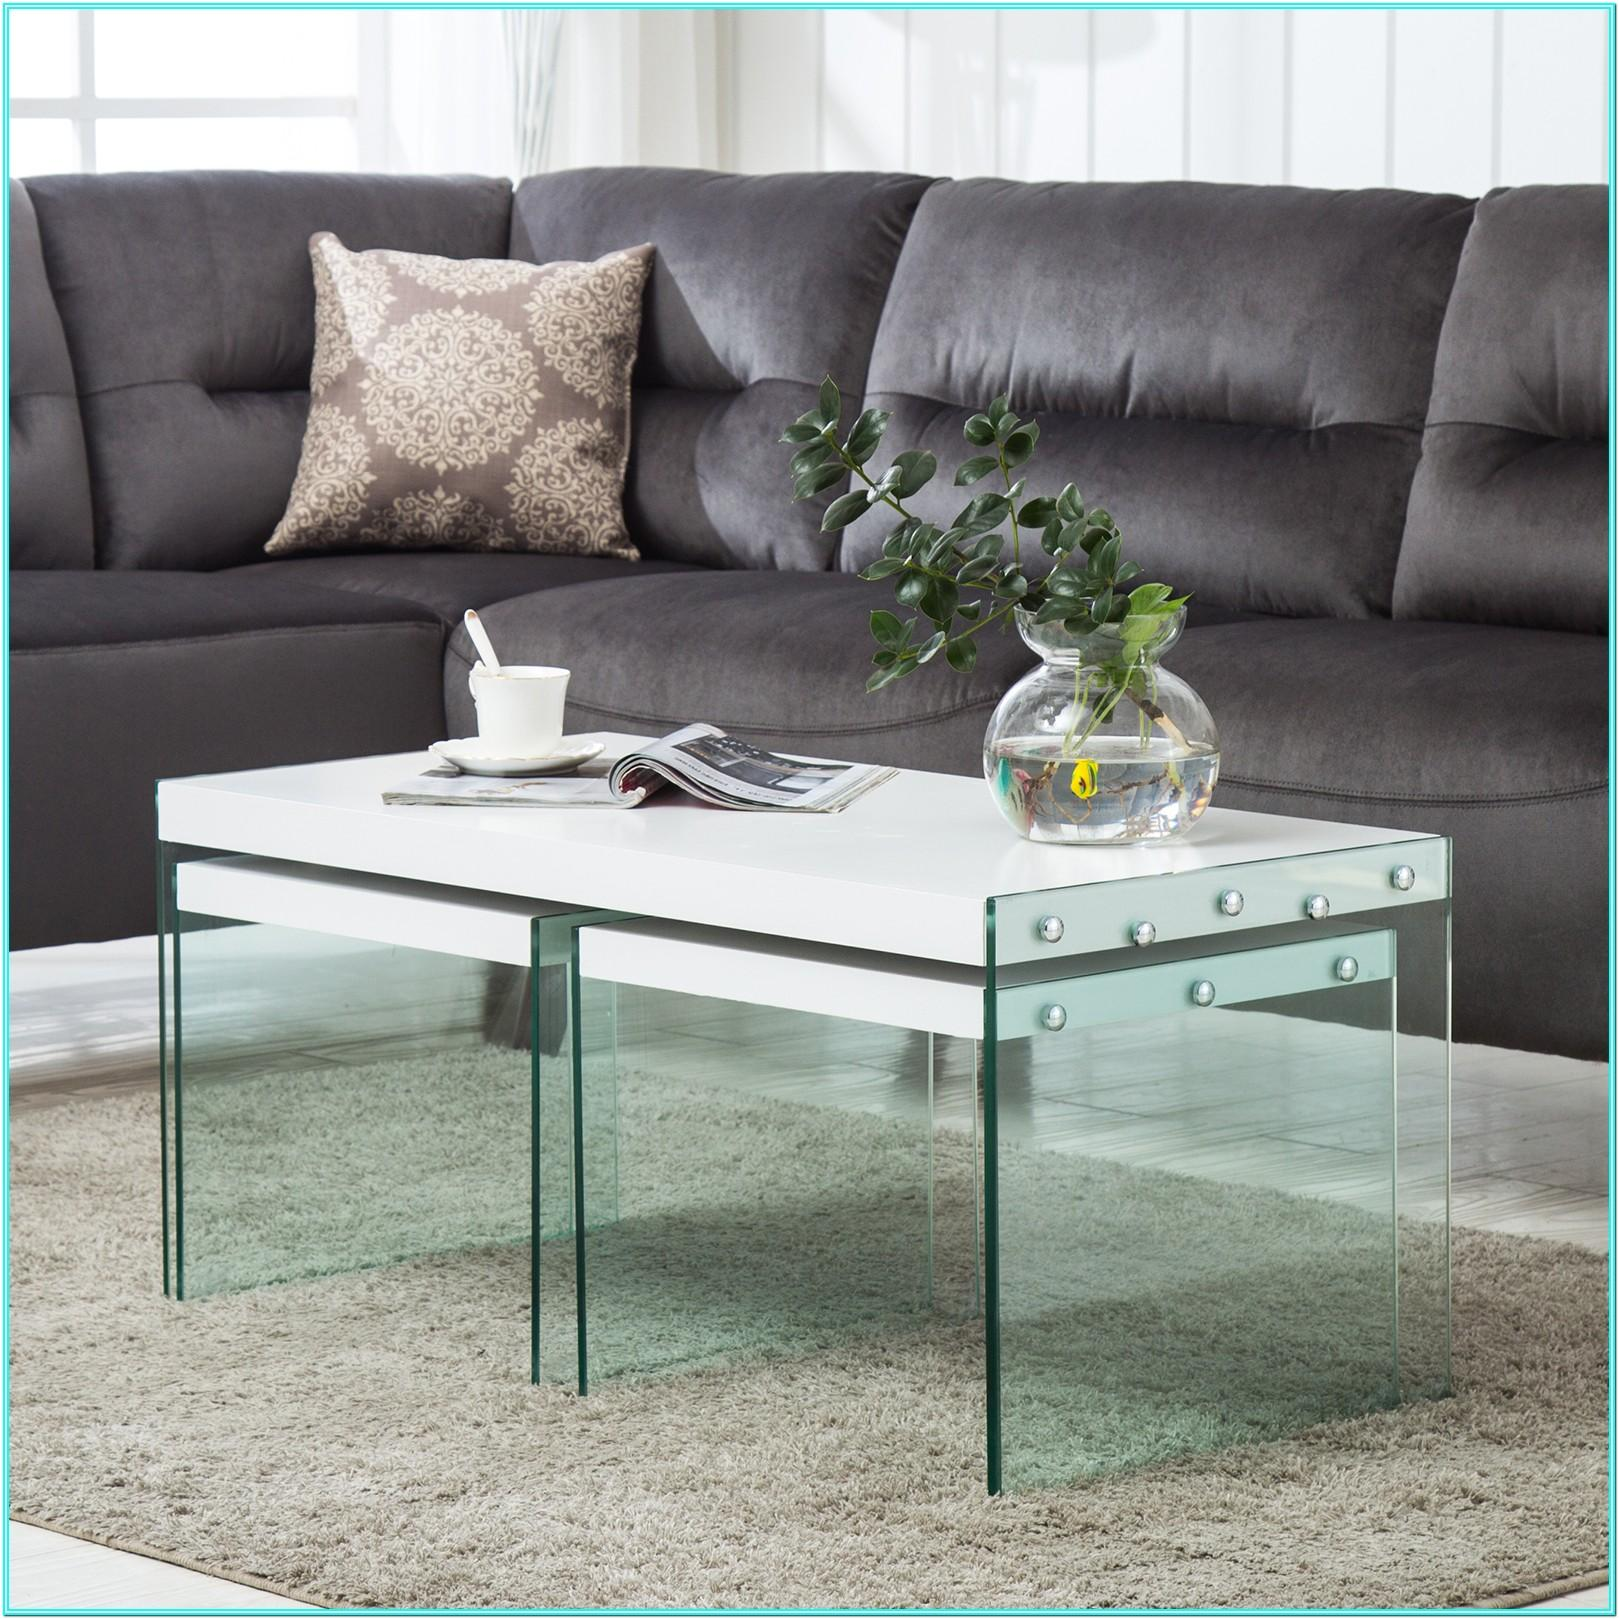 Living Room End Tables And Coffee Table Set